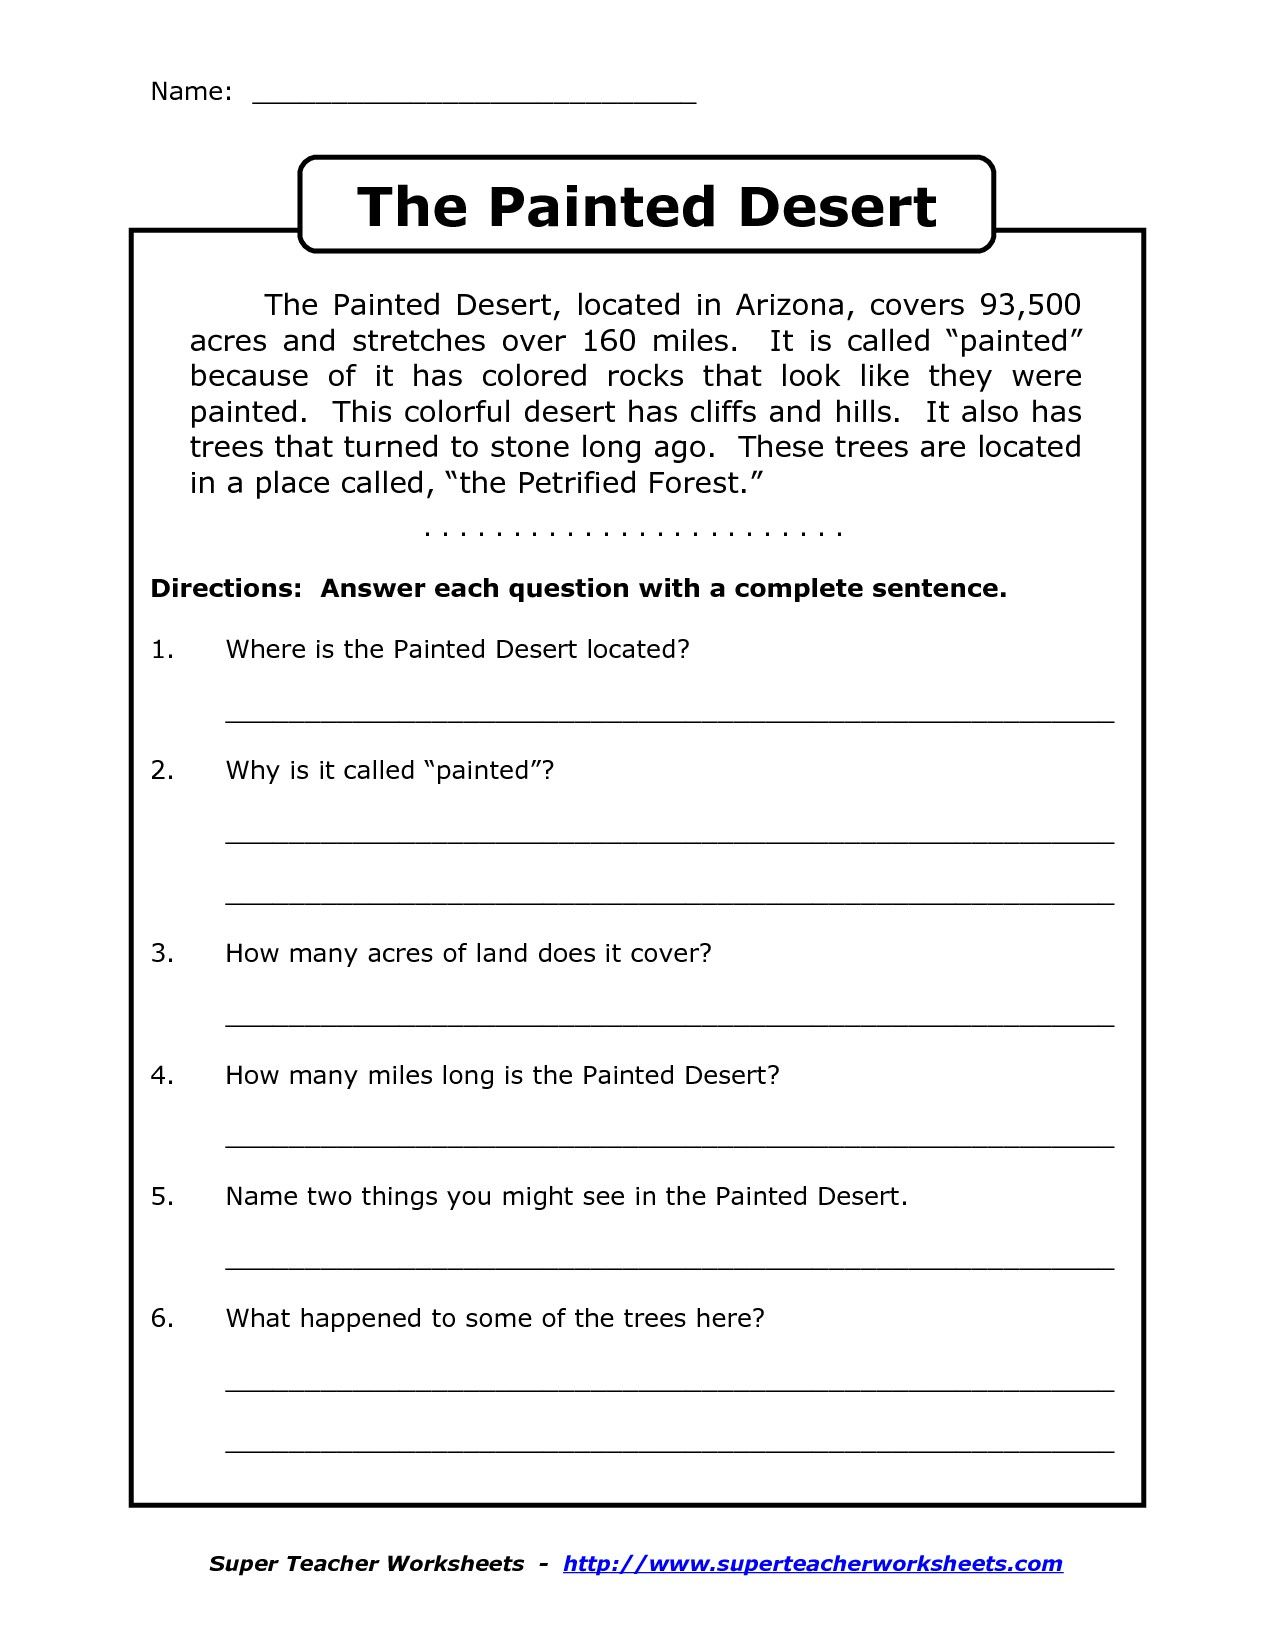 Worksheets Free Printable Reading Comprehension Worksheets For 5th Grade comprehension worksheet for 1st grade y2p3 the painted desert arizona dont forget to edit colored and colorful the